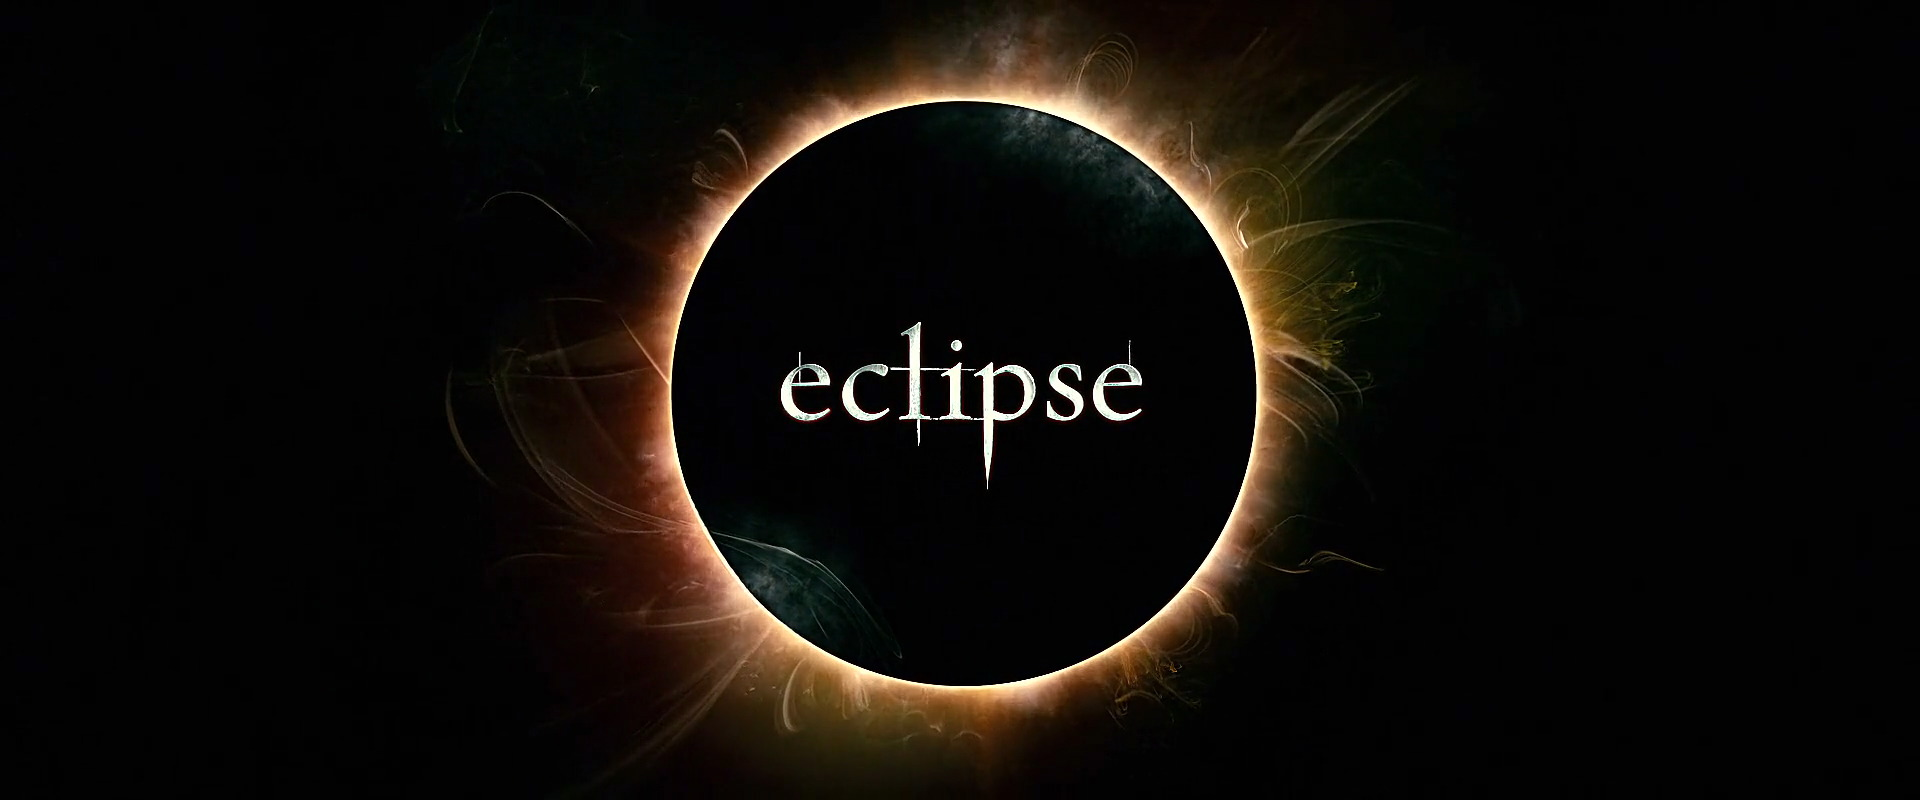 eclipse free full movie